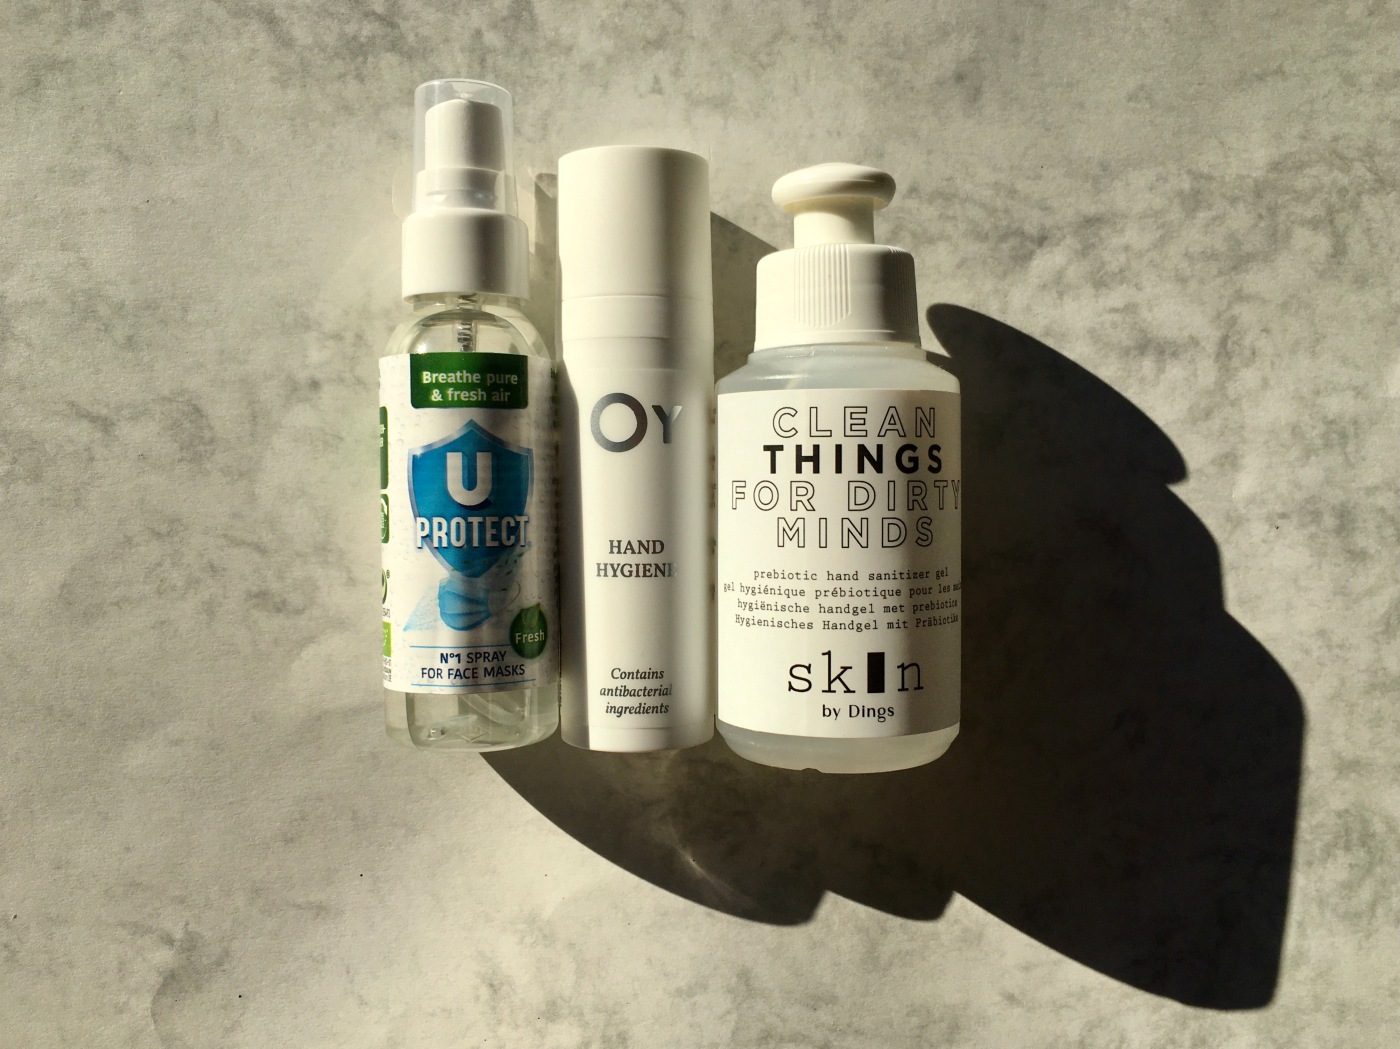 u protect oy hand hygiene clean things for dirty minds skin by dings